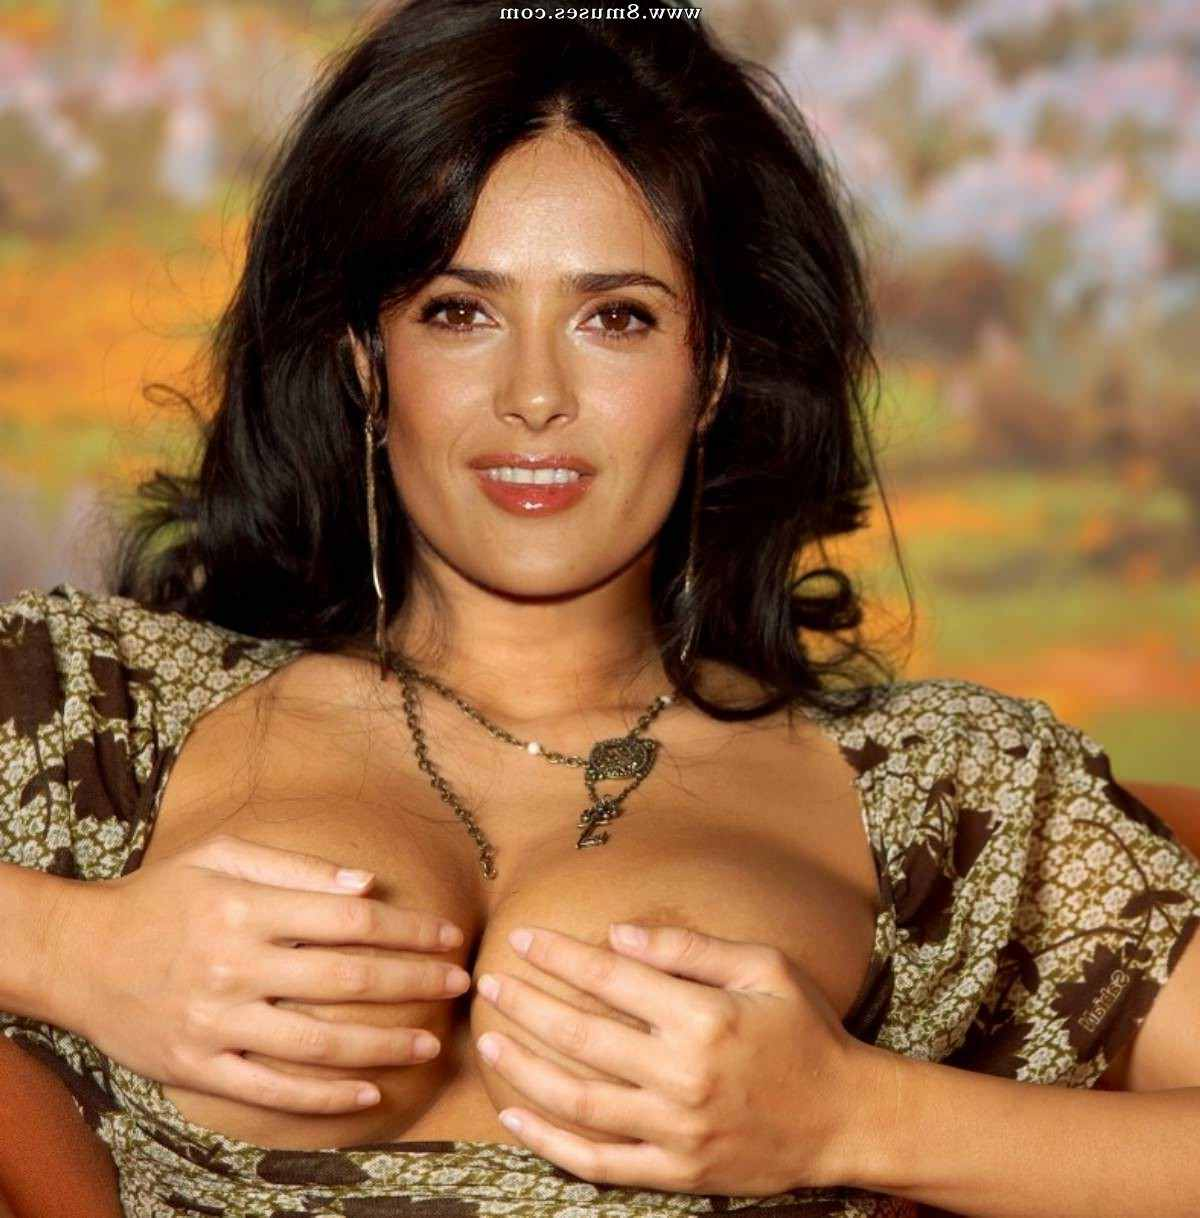 Fake-Celebrities-Sex-Pictures/Salma-Hayek Salma_Hayek__8muses_-_Sex_and_Porn_Comics_108.jpg